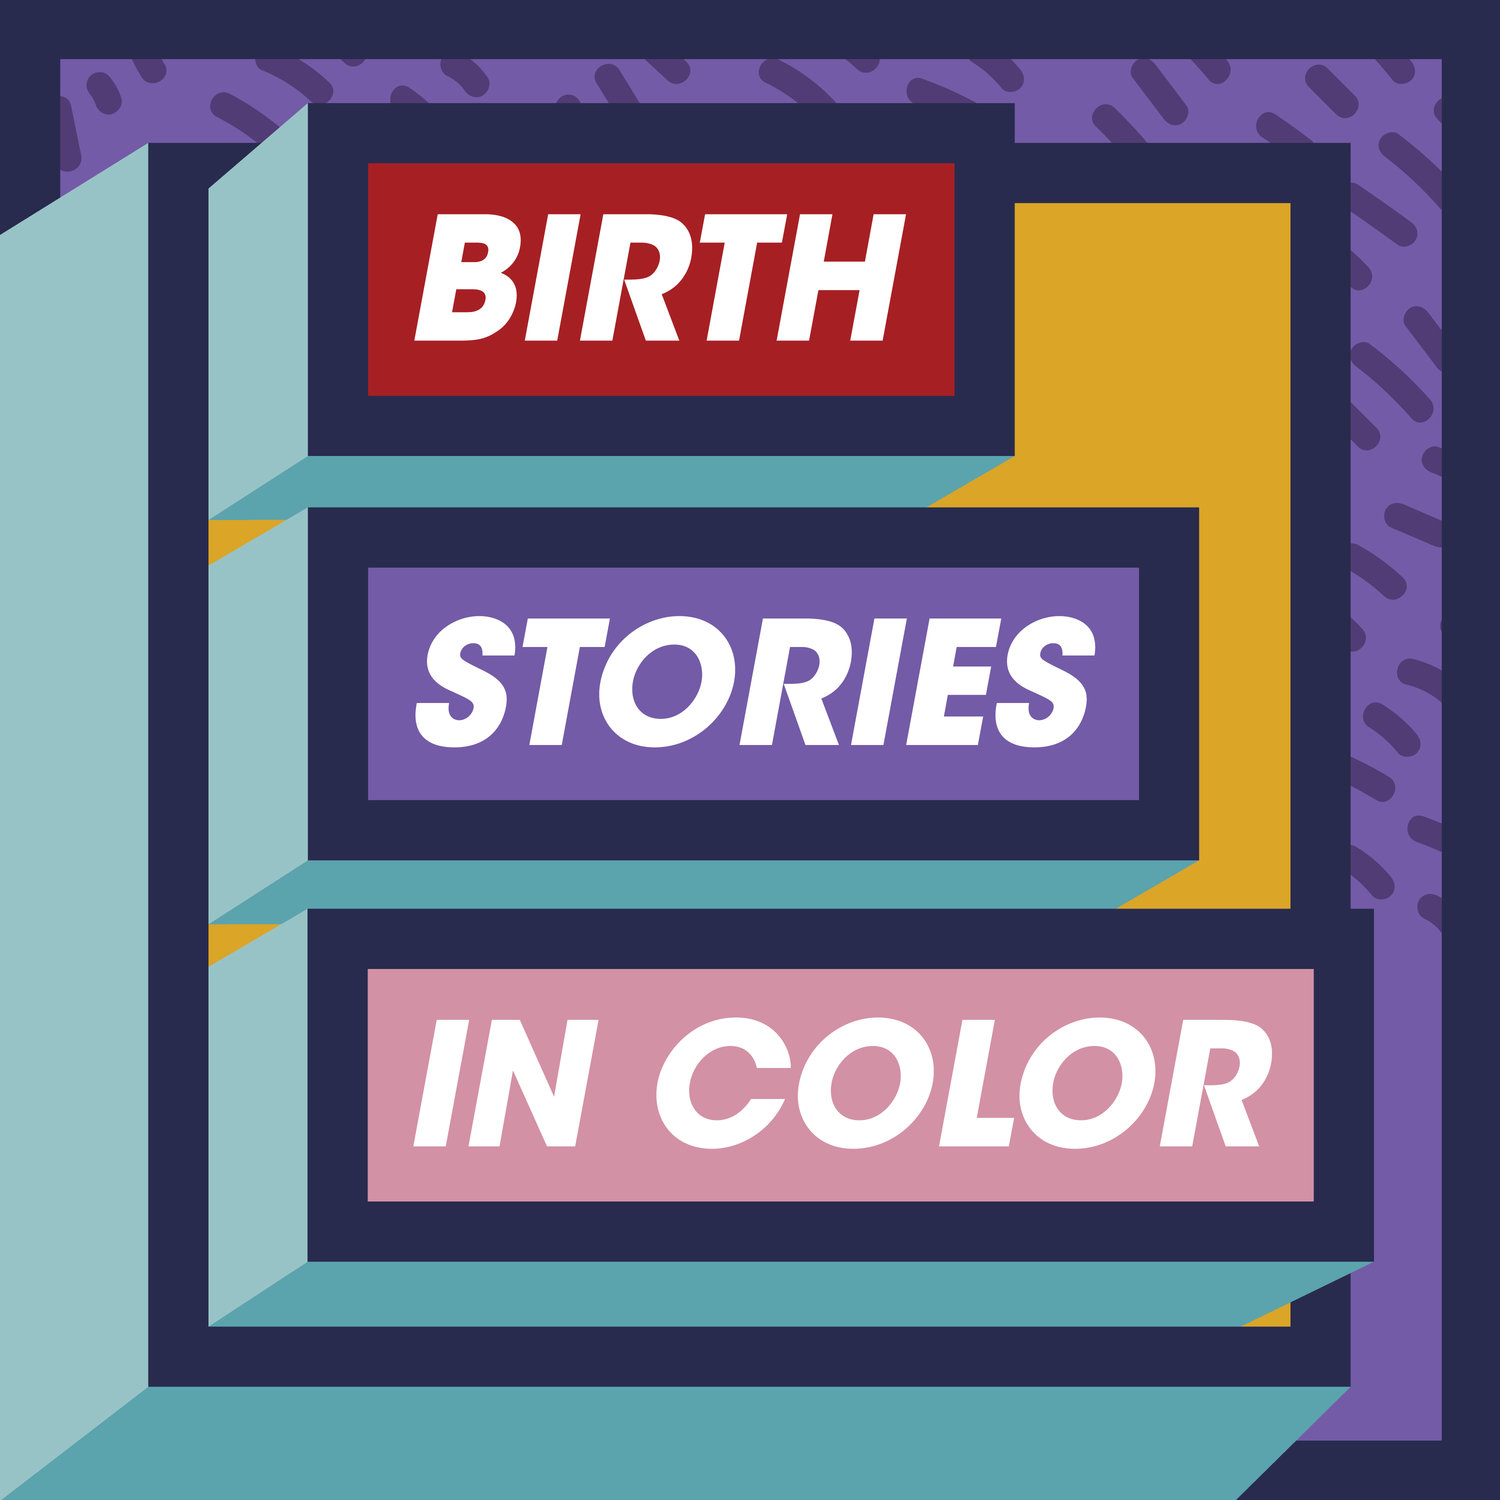 Birth Stories in Color